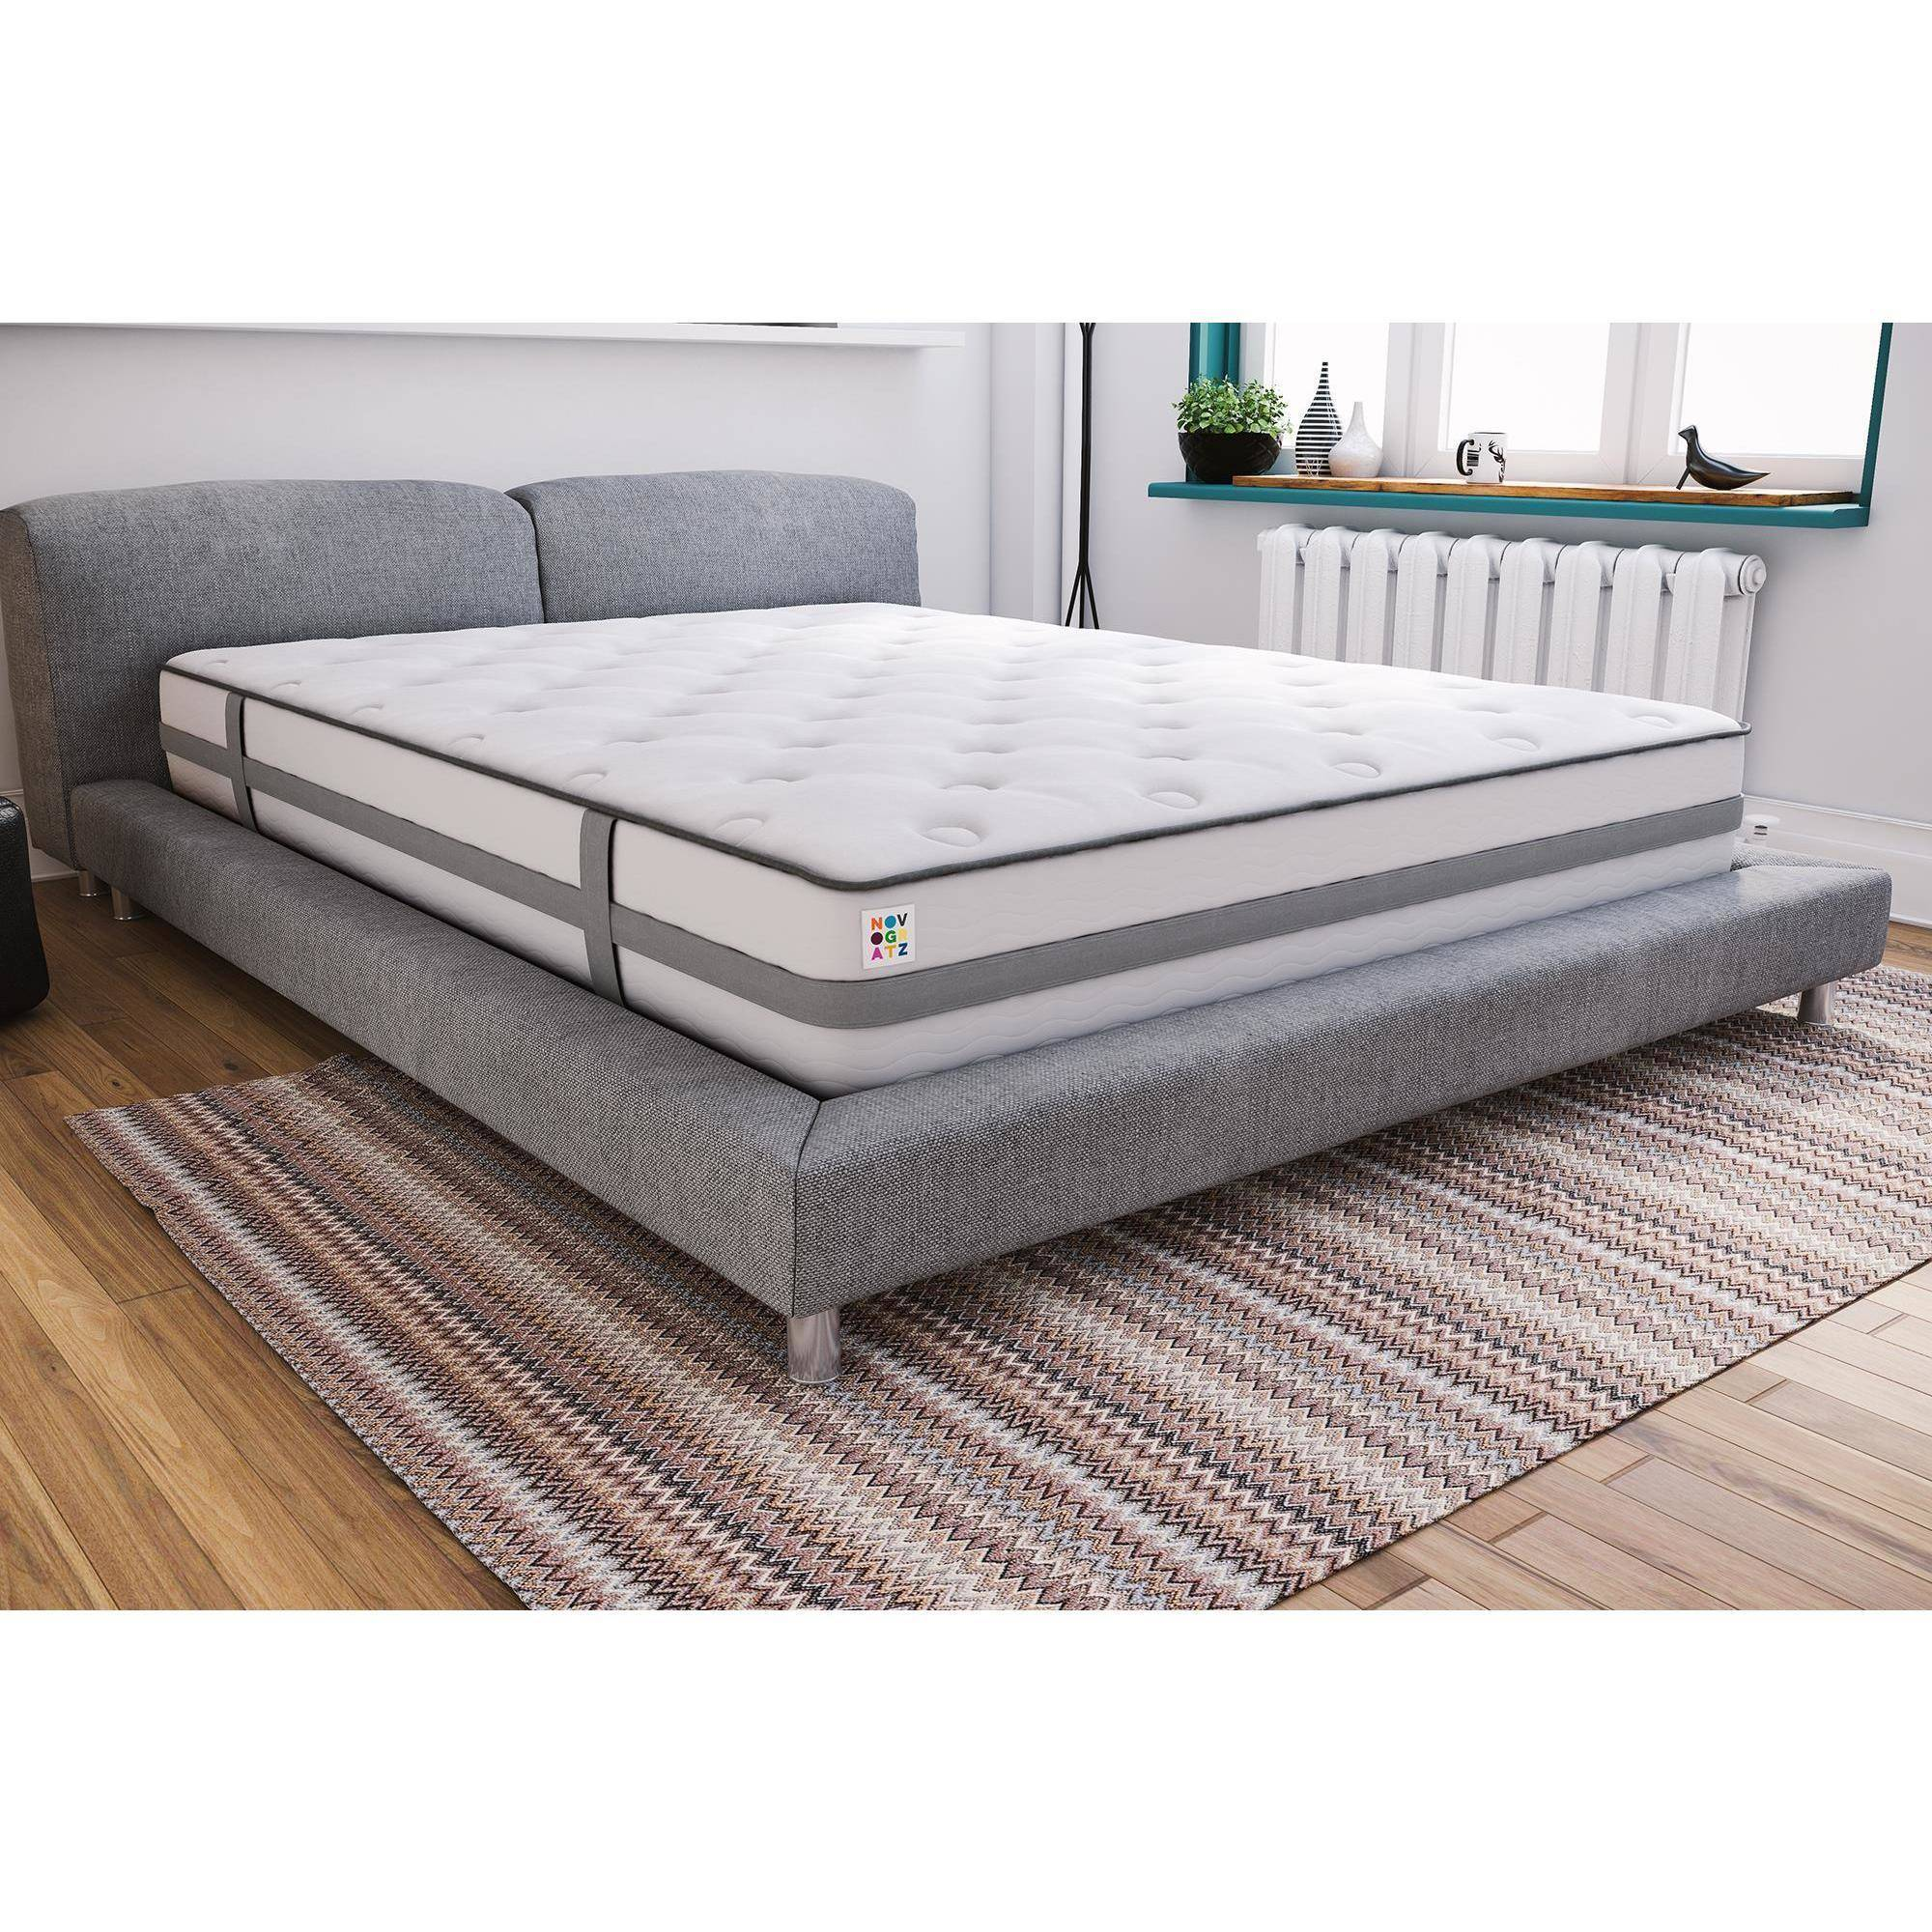 Latex Foam Mattress Novogratz Atlas Mattress Latex Memory Foam Mattress With Certipur Us Certified Foam Multiple Sizes